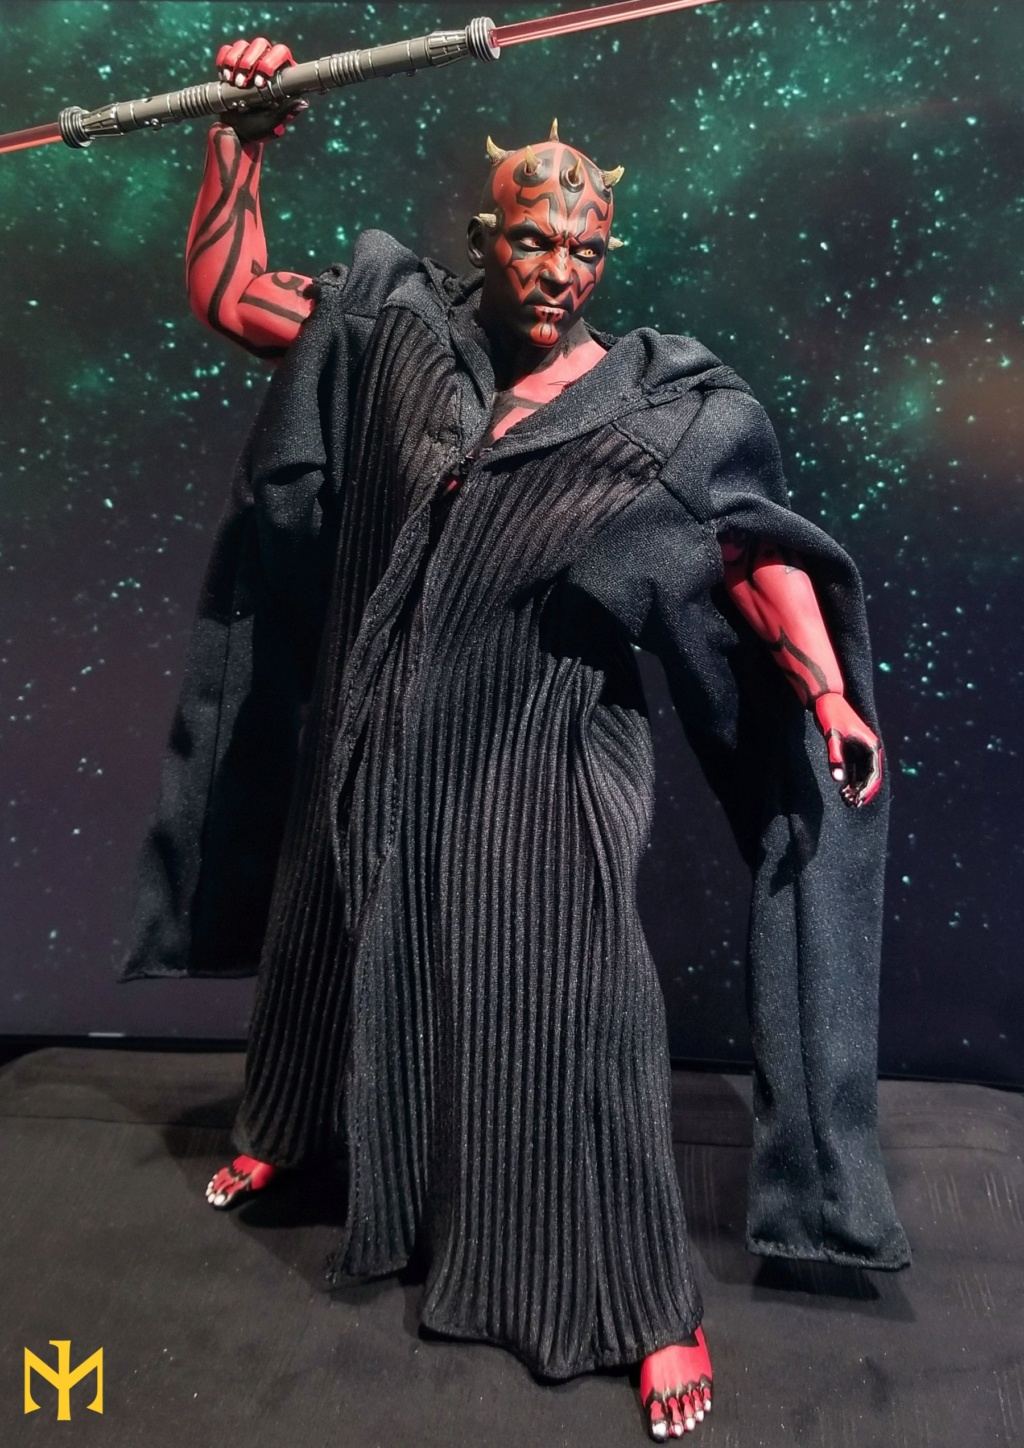 STAR WARS Updated Darth Maul Custom Part IV Maul 2.0 (photo heavy) Swdmt012